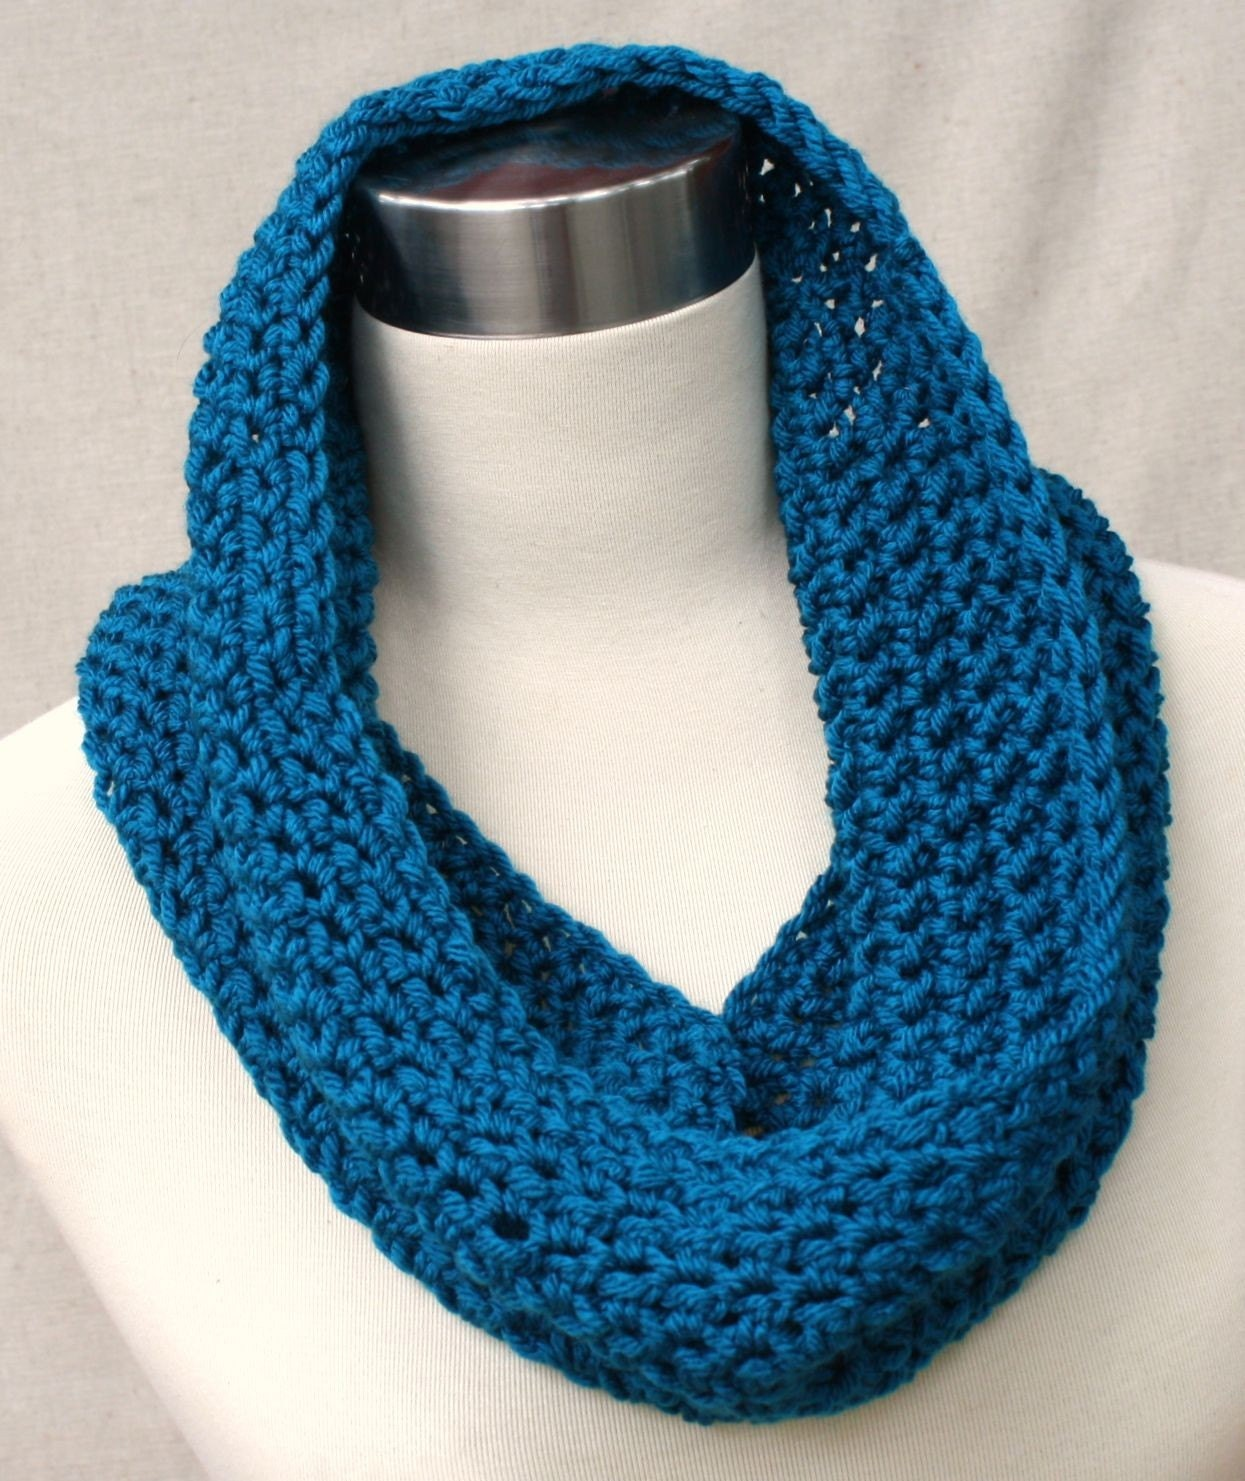 crochet teal cowl neck scarf available in 36 colors from  Cowl Neck Scarves Crochet